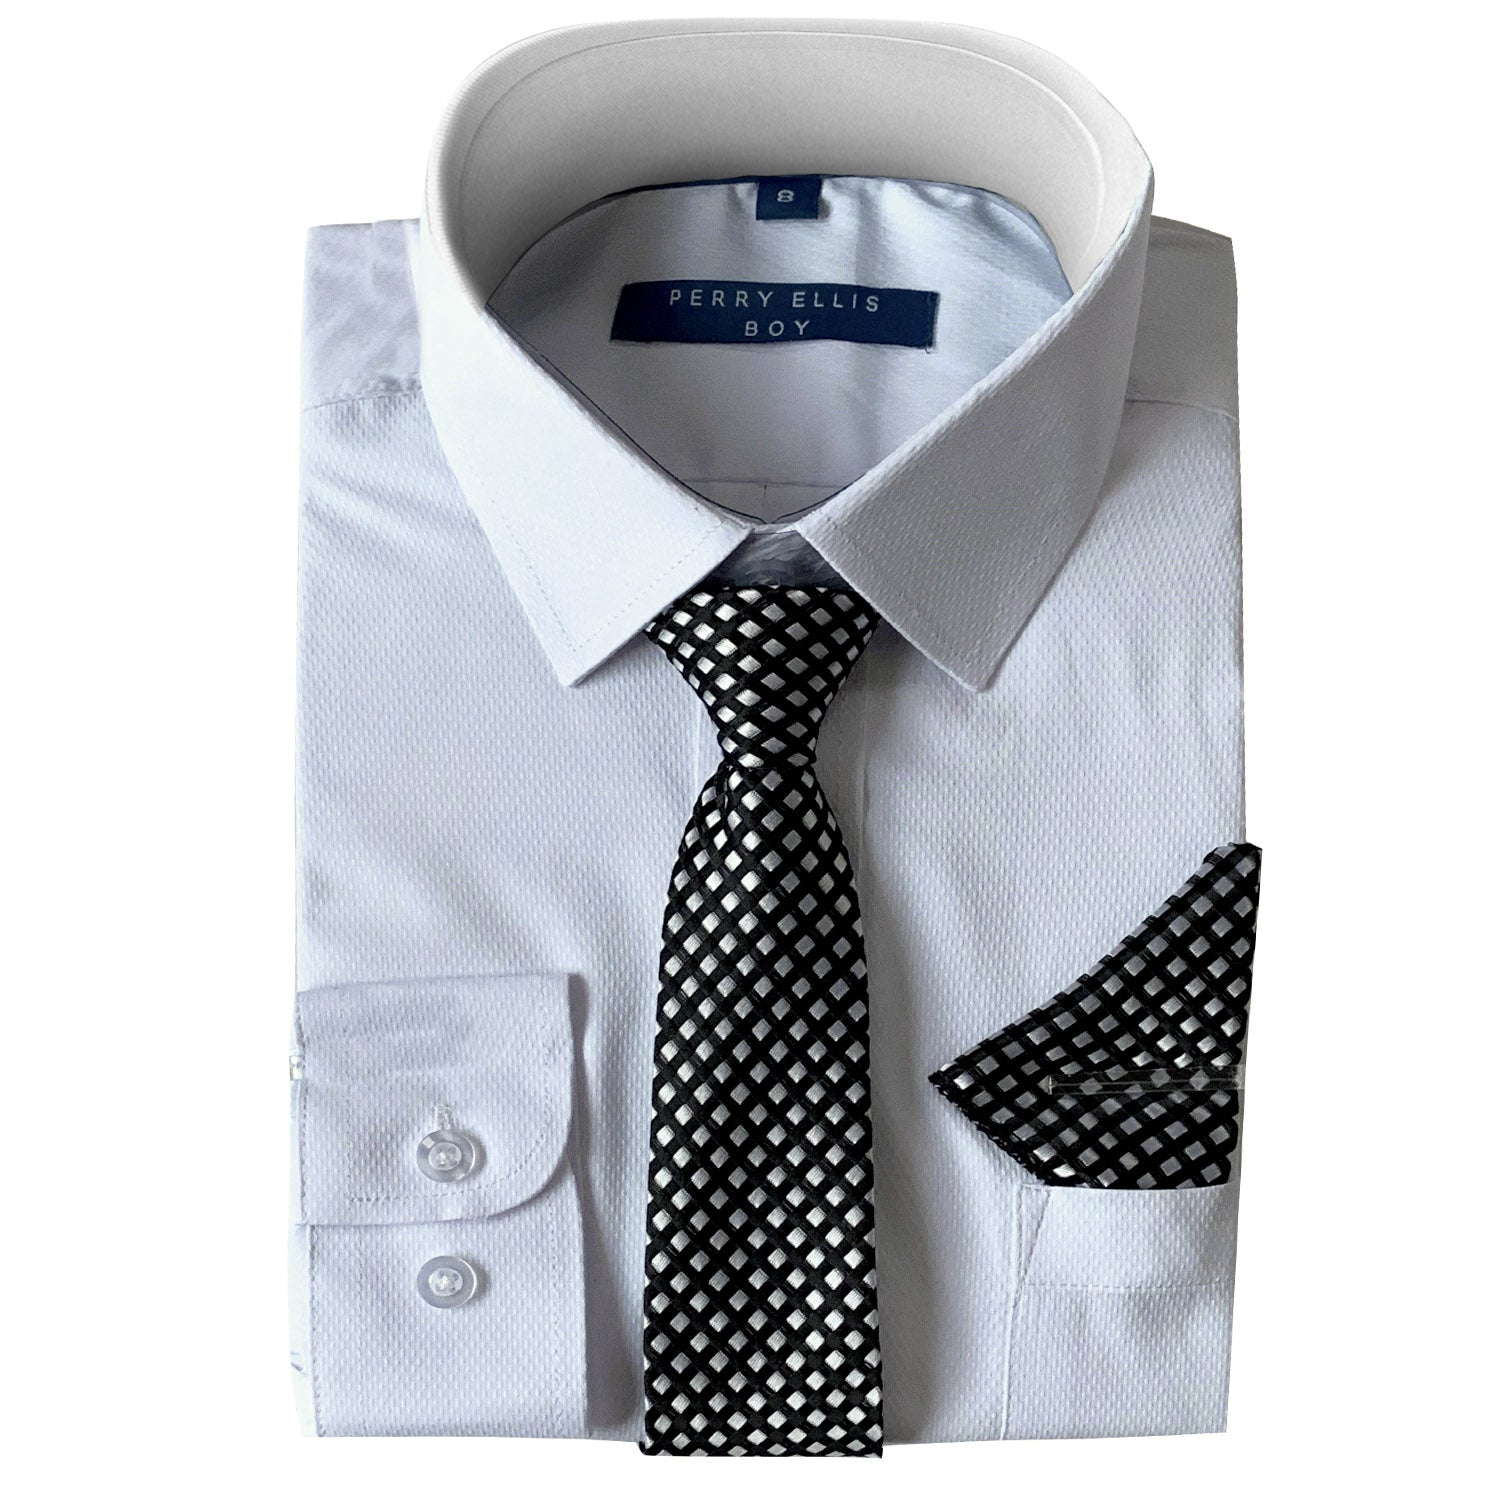 Perry Ellis Boys Dress Shirts w Lt Grey Tie Solid Shirts w Patterned Tie